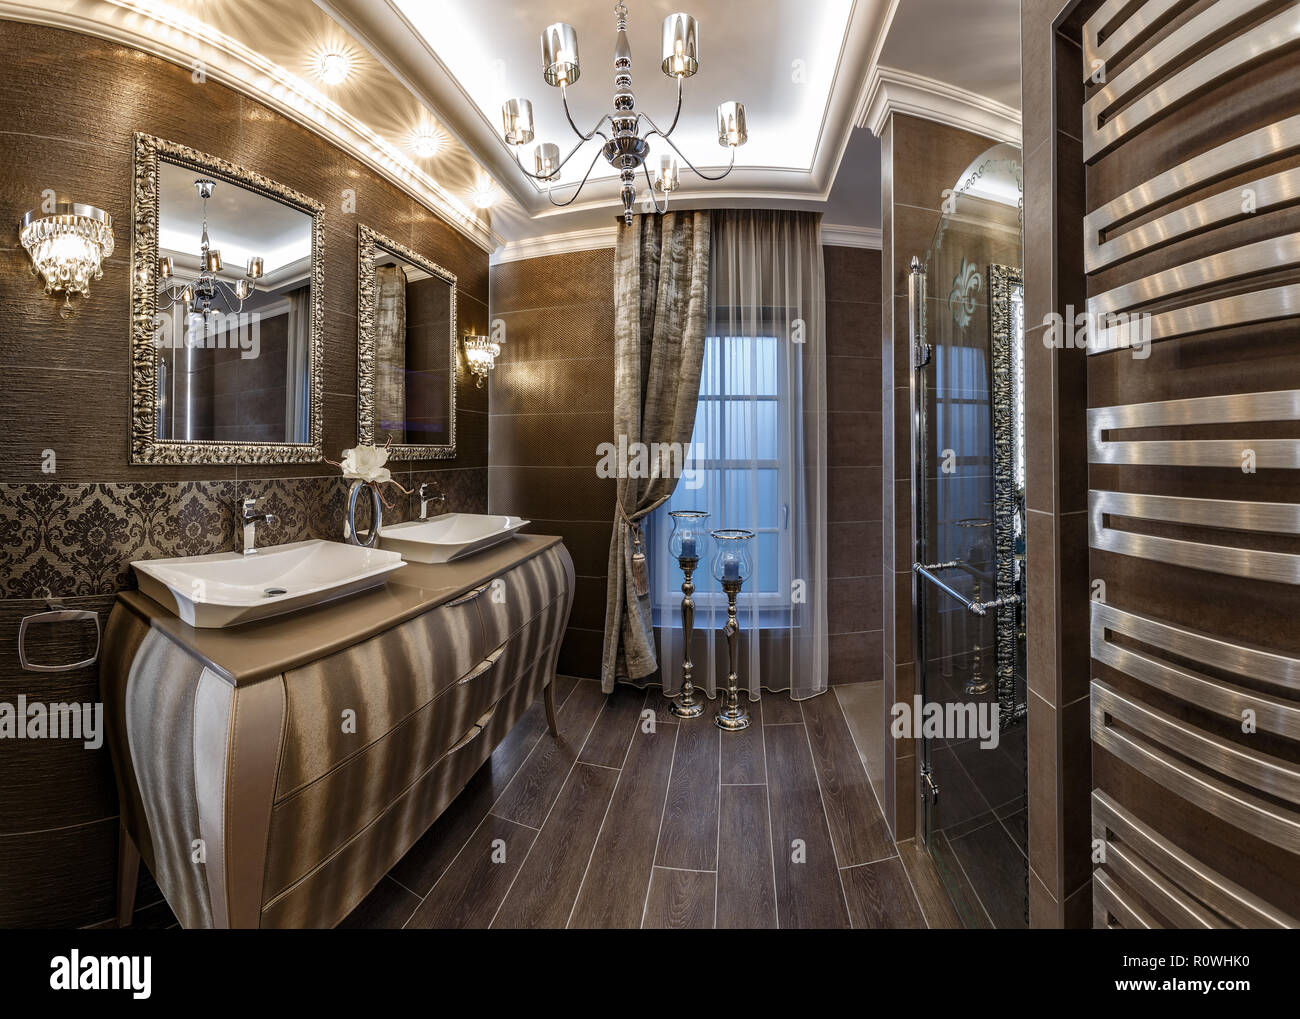 Bathroom in brown tones with two sinks Stock Photo